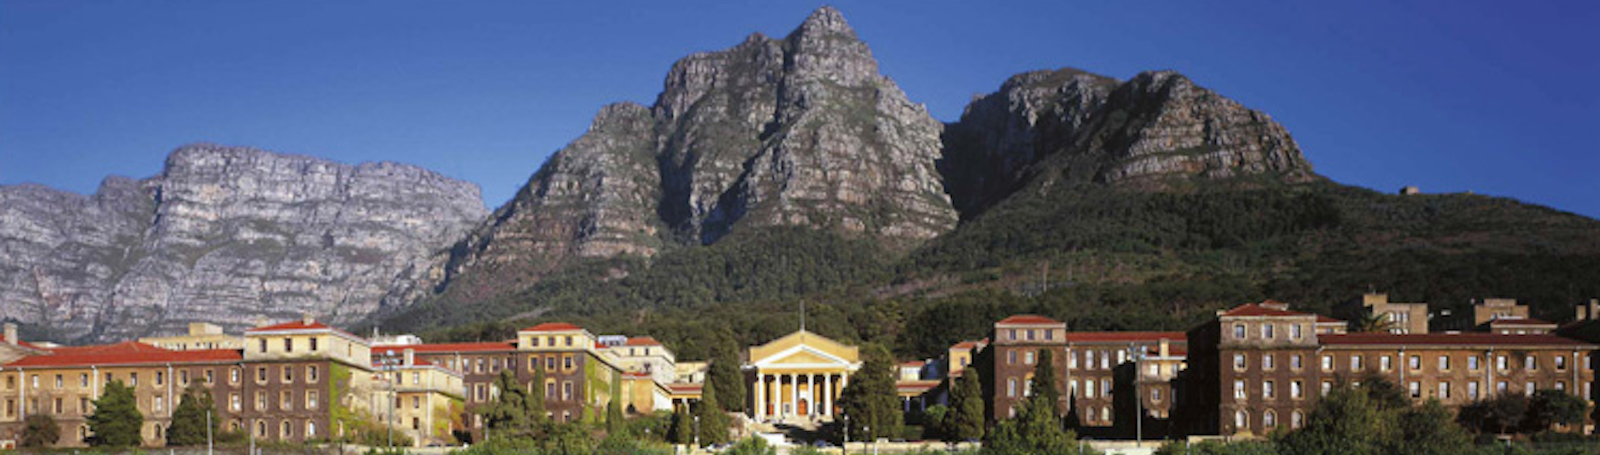 UCT Canada Home